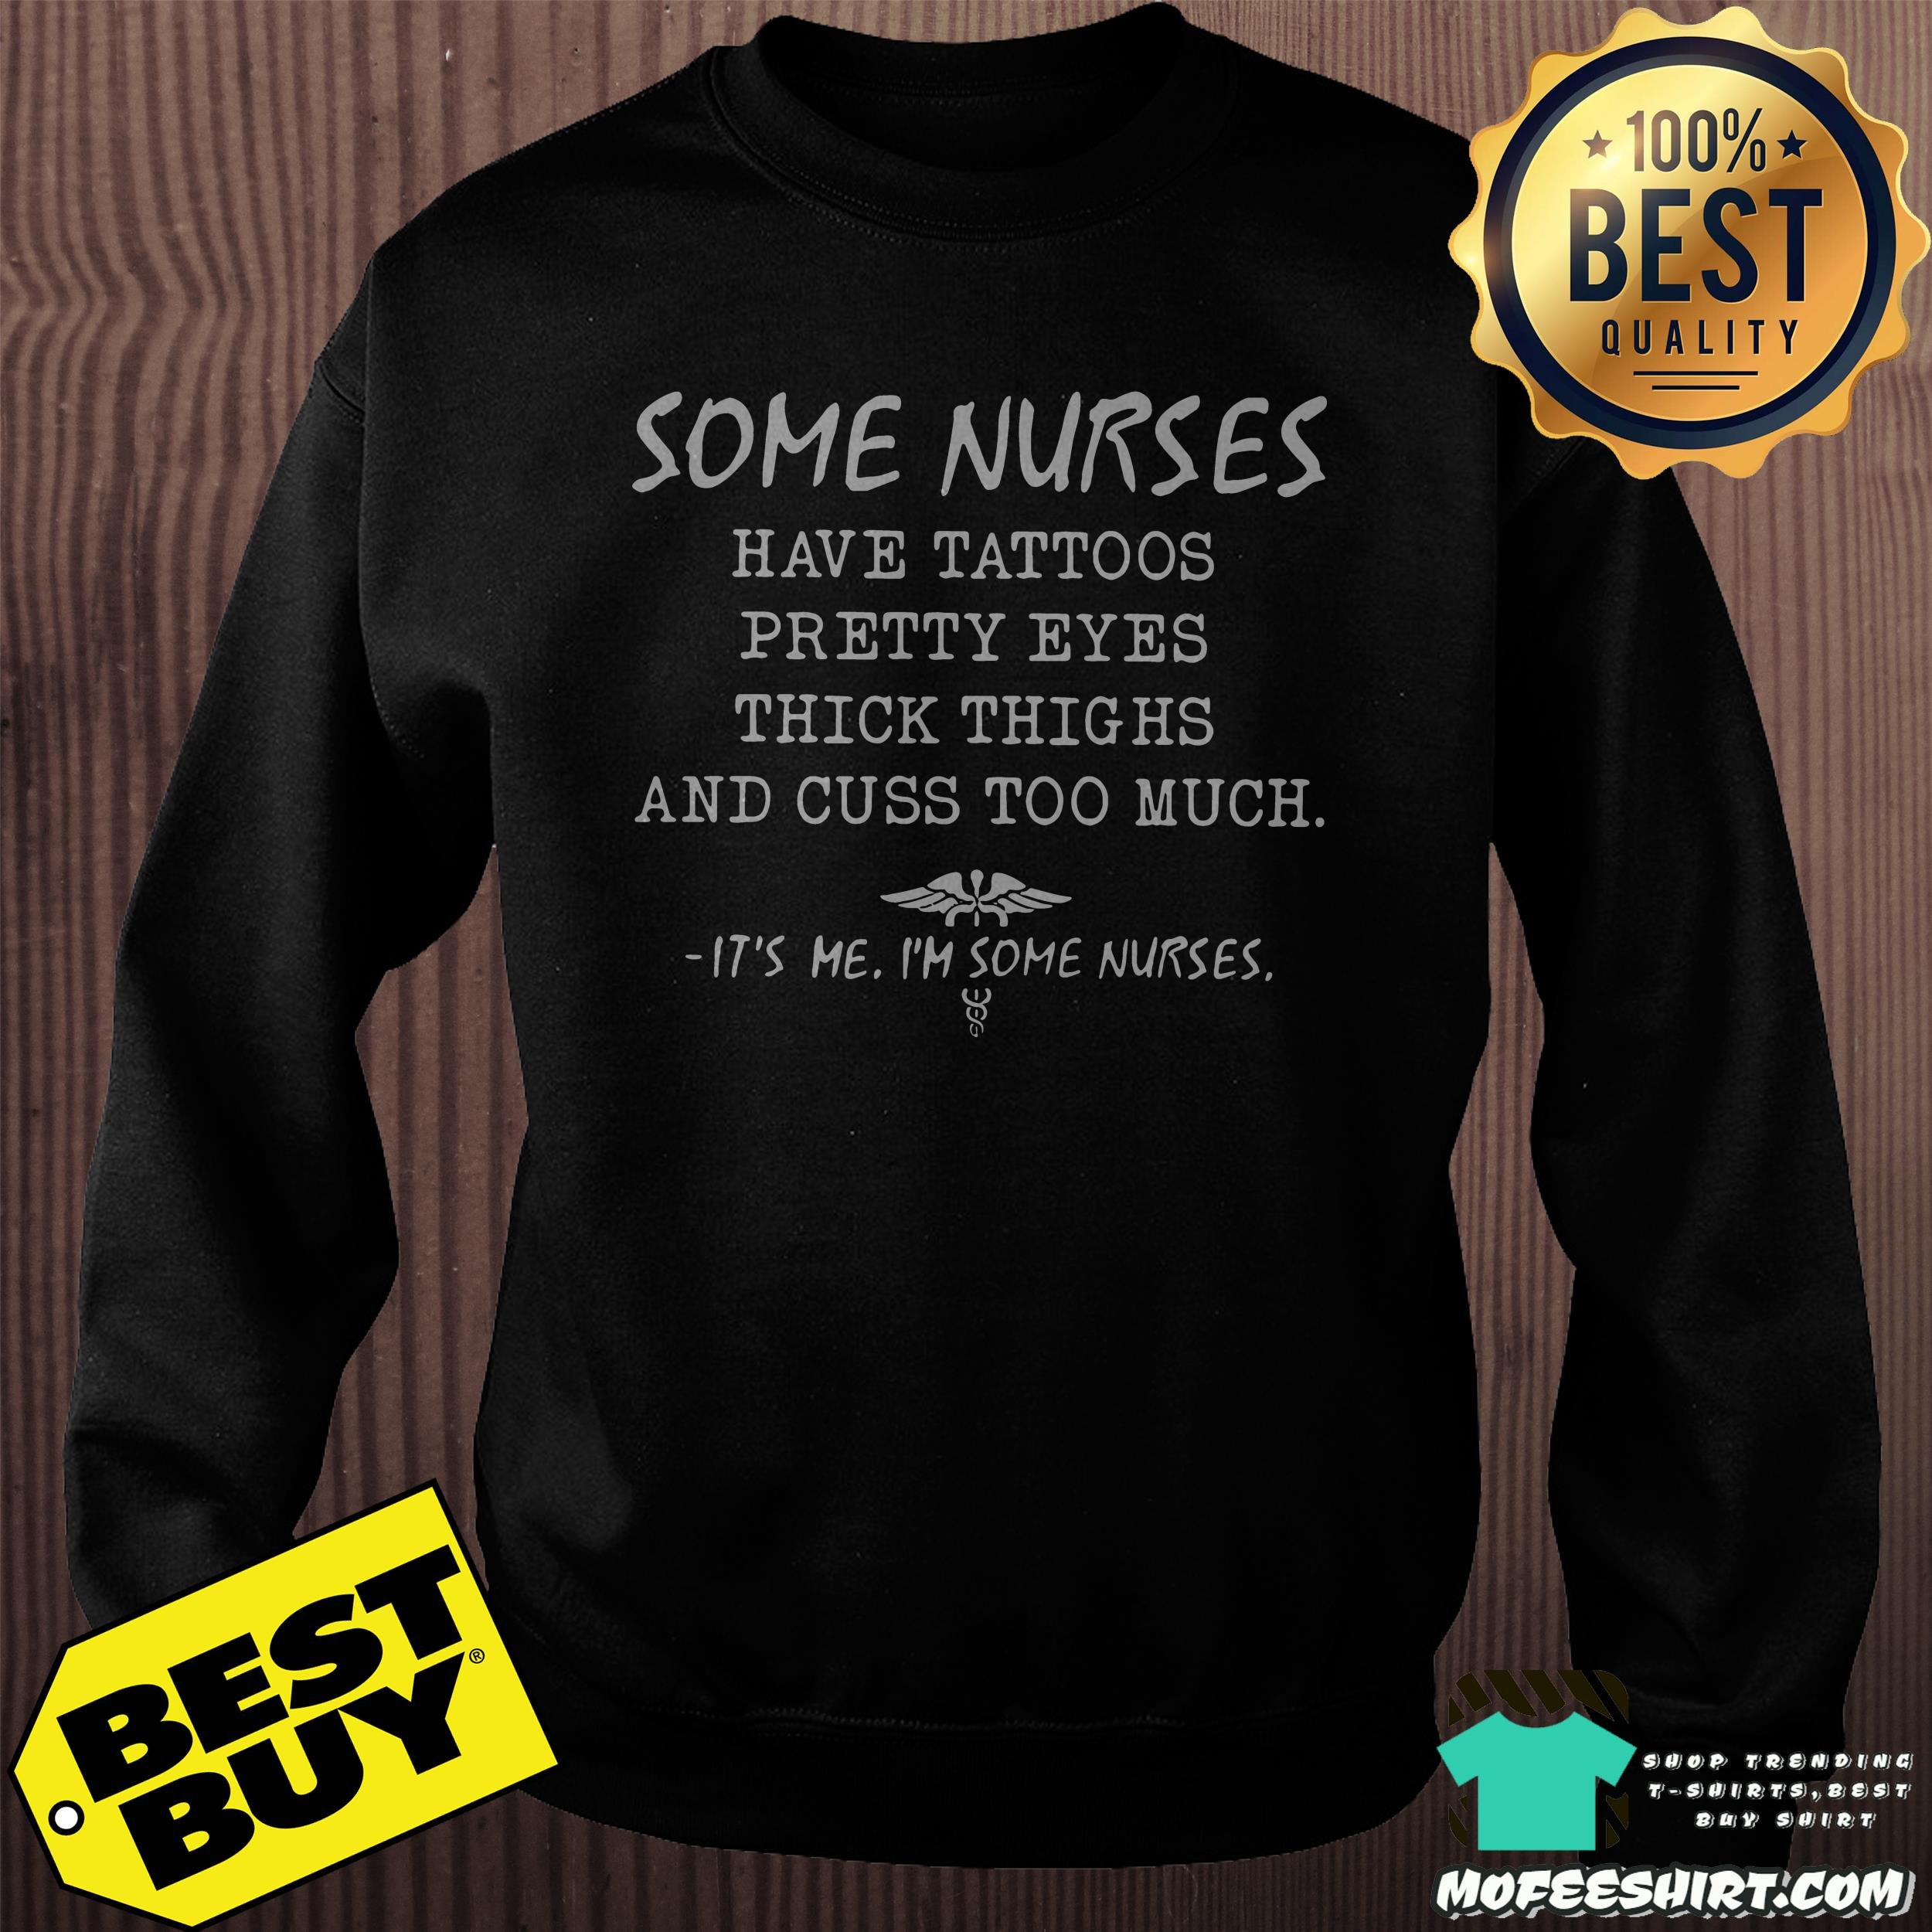 some nurses have tattoos pretty eyes thick thighs and cuss too much sweatshirt - Some nurses have tattoos pretty eyes thick thighs and cuss too much shirt